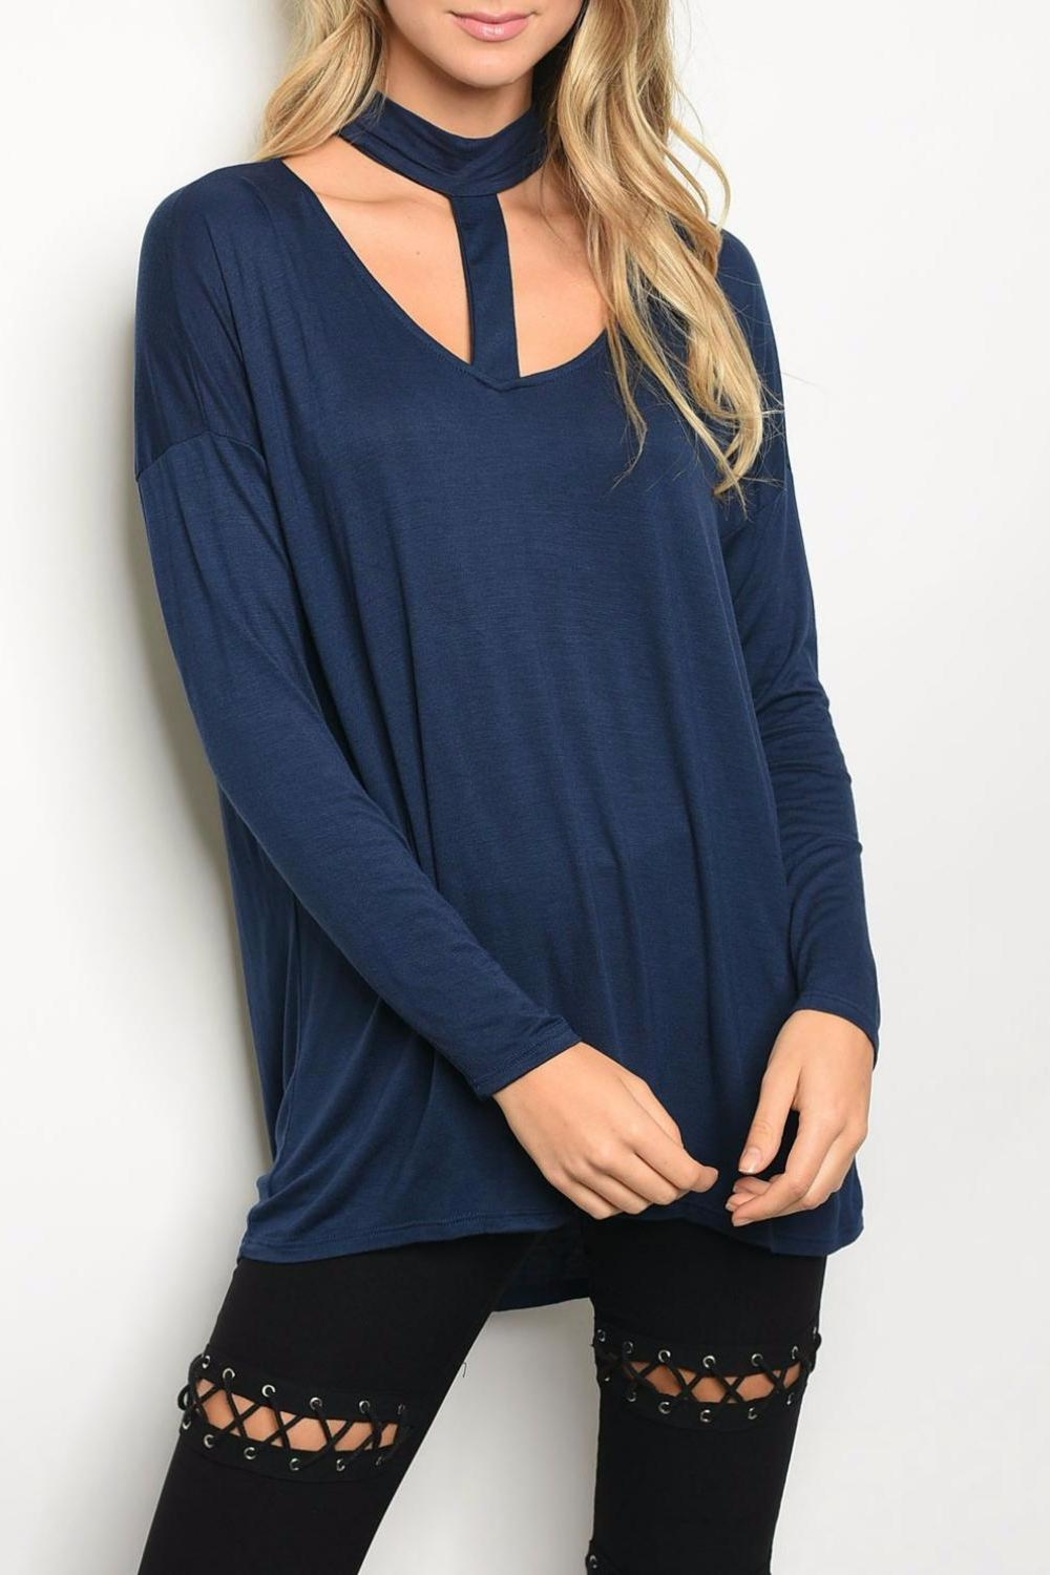 Peach Love California Navy Chocker Top - Main Image